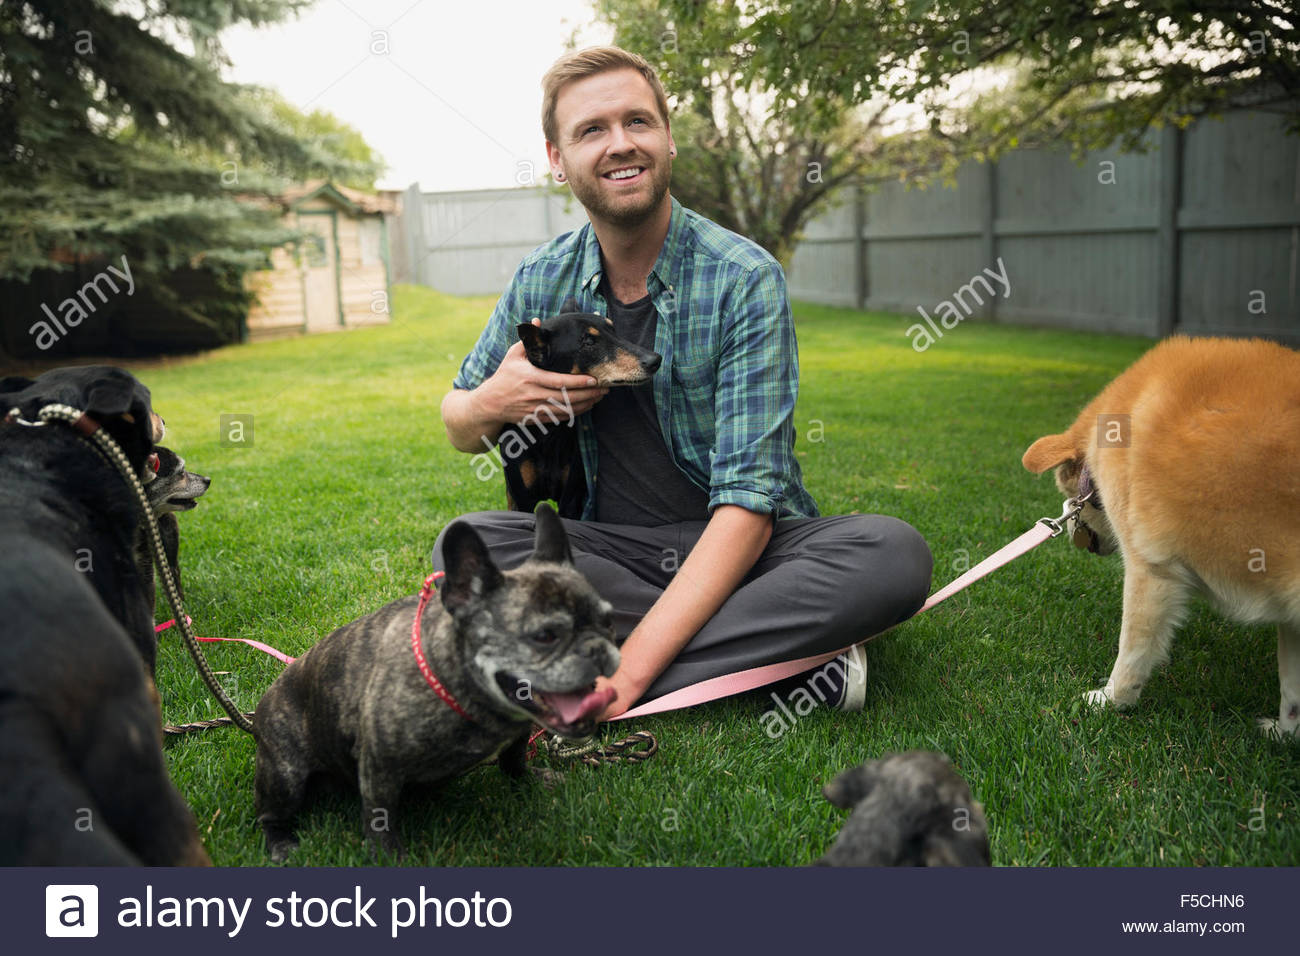 Man with dogs on leashes sitting in grass Stock Photo